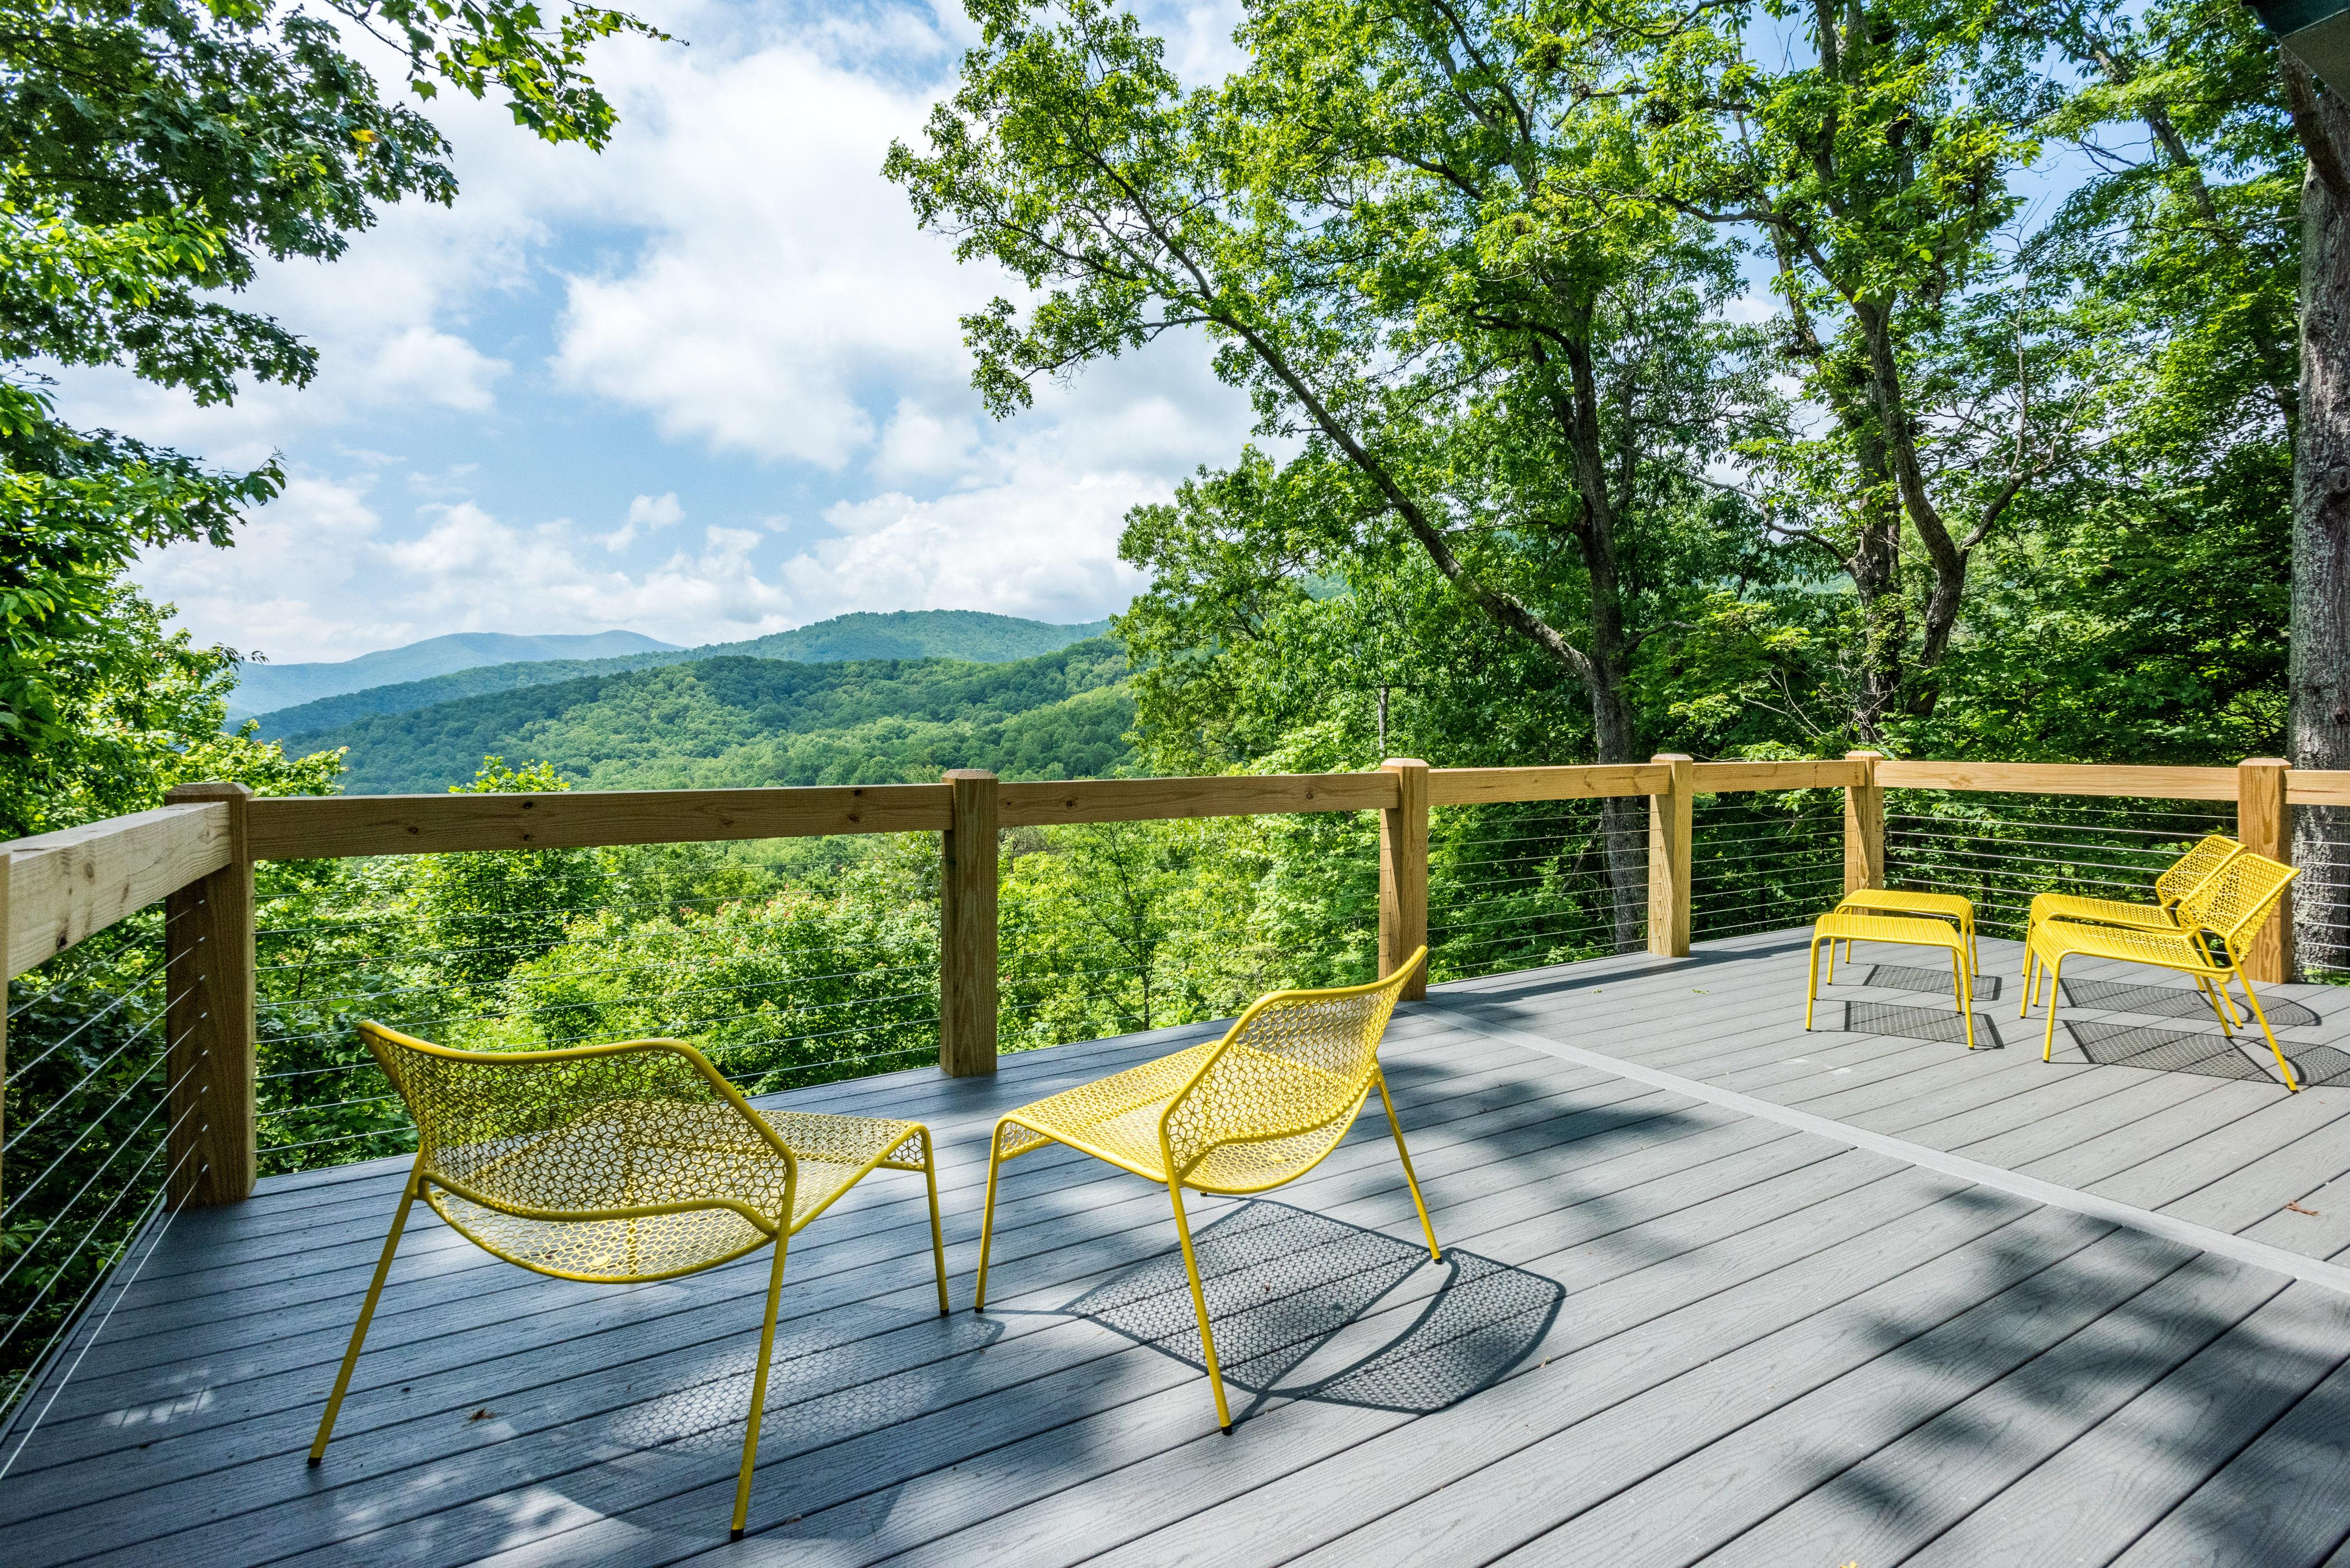 Take in sweeping views of the Blue Ridge Mountains from your deck.